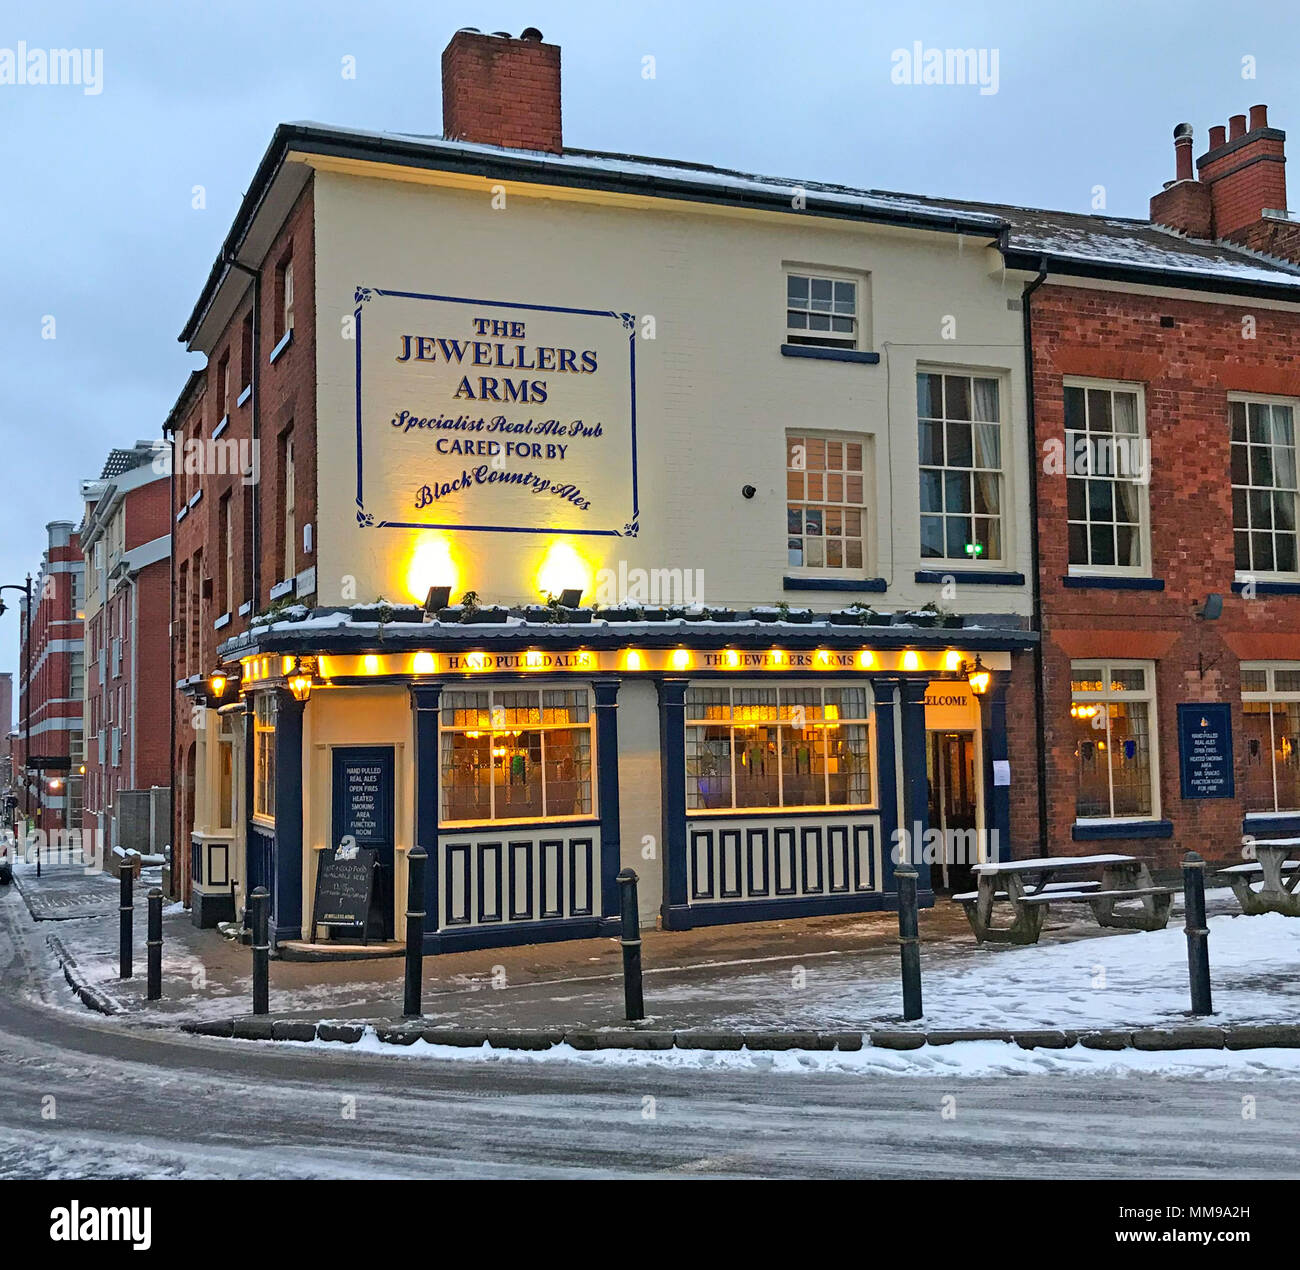 GoTonysmith,@HotpixUK,pub,bar,Jewellery Quarter,Quarter,city,centre,dusk,night,at night,winter,cold,drink,drinking,traditional,ale,ales,beers,brick,street,West Midlands,england,Black Country,UK,GB,Birmingham,the,snow,snowy,scene,snowy scene,boozer,old fashioned,craft ales,in the snow warm,city centre in the snow,homely